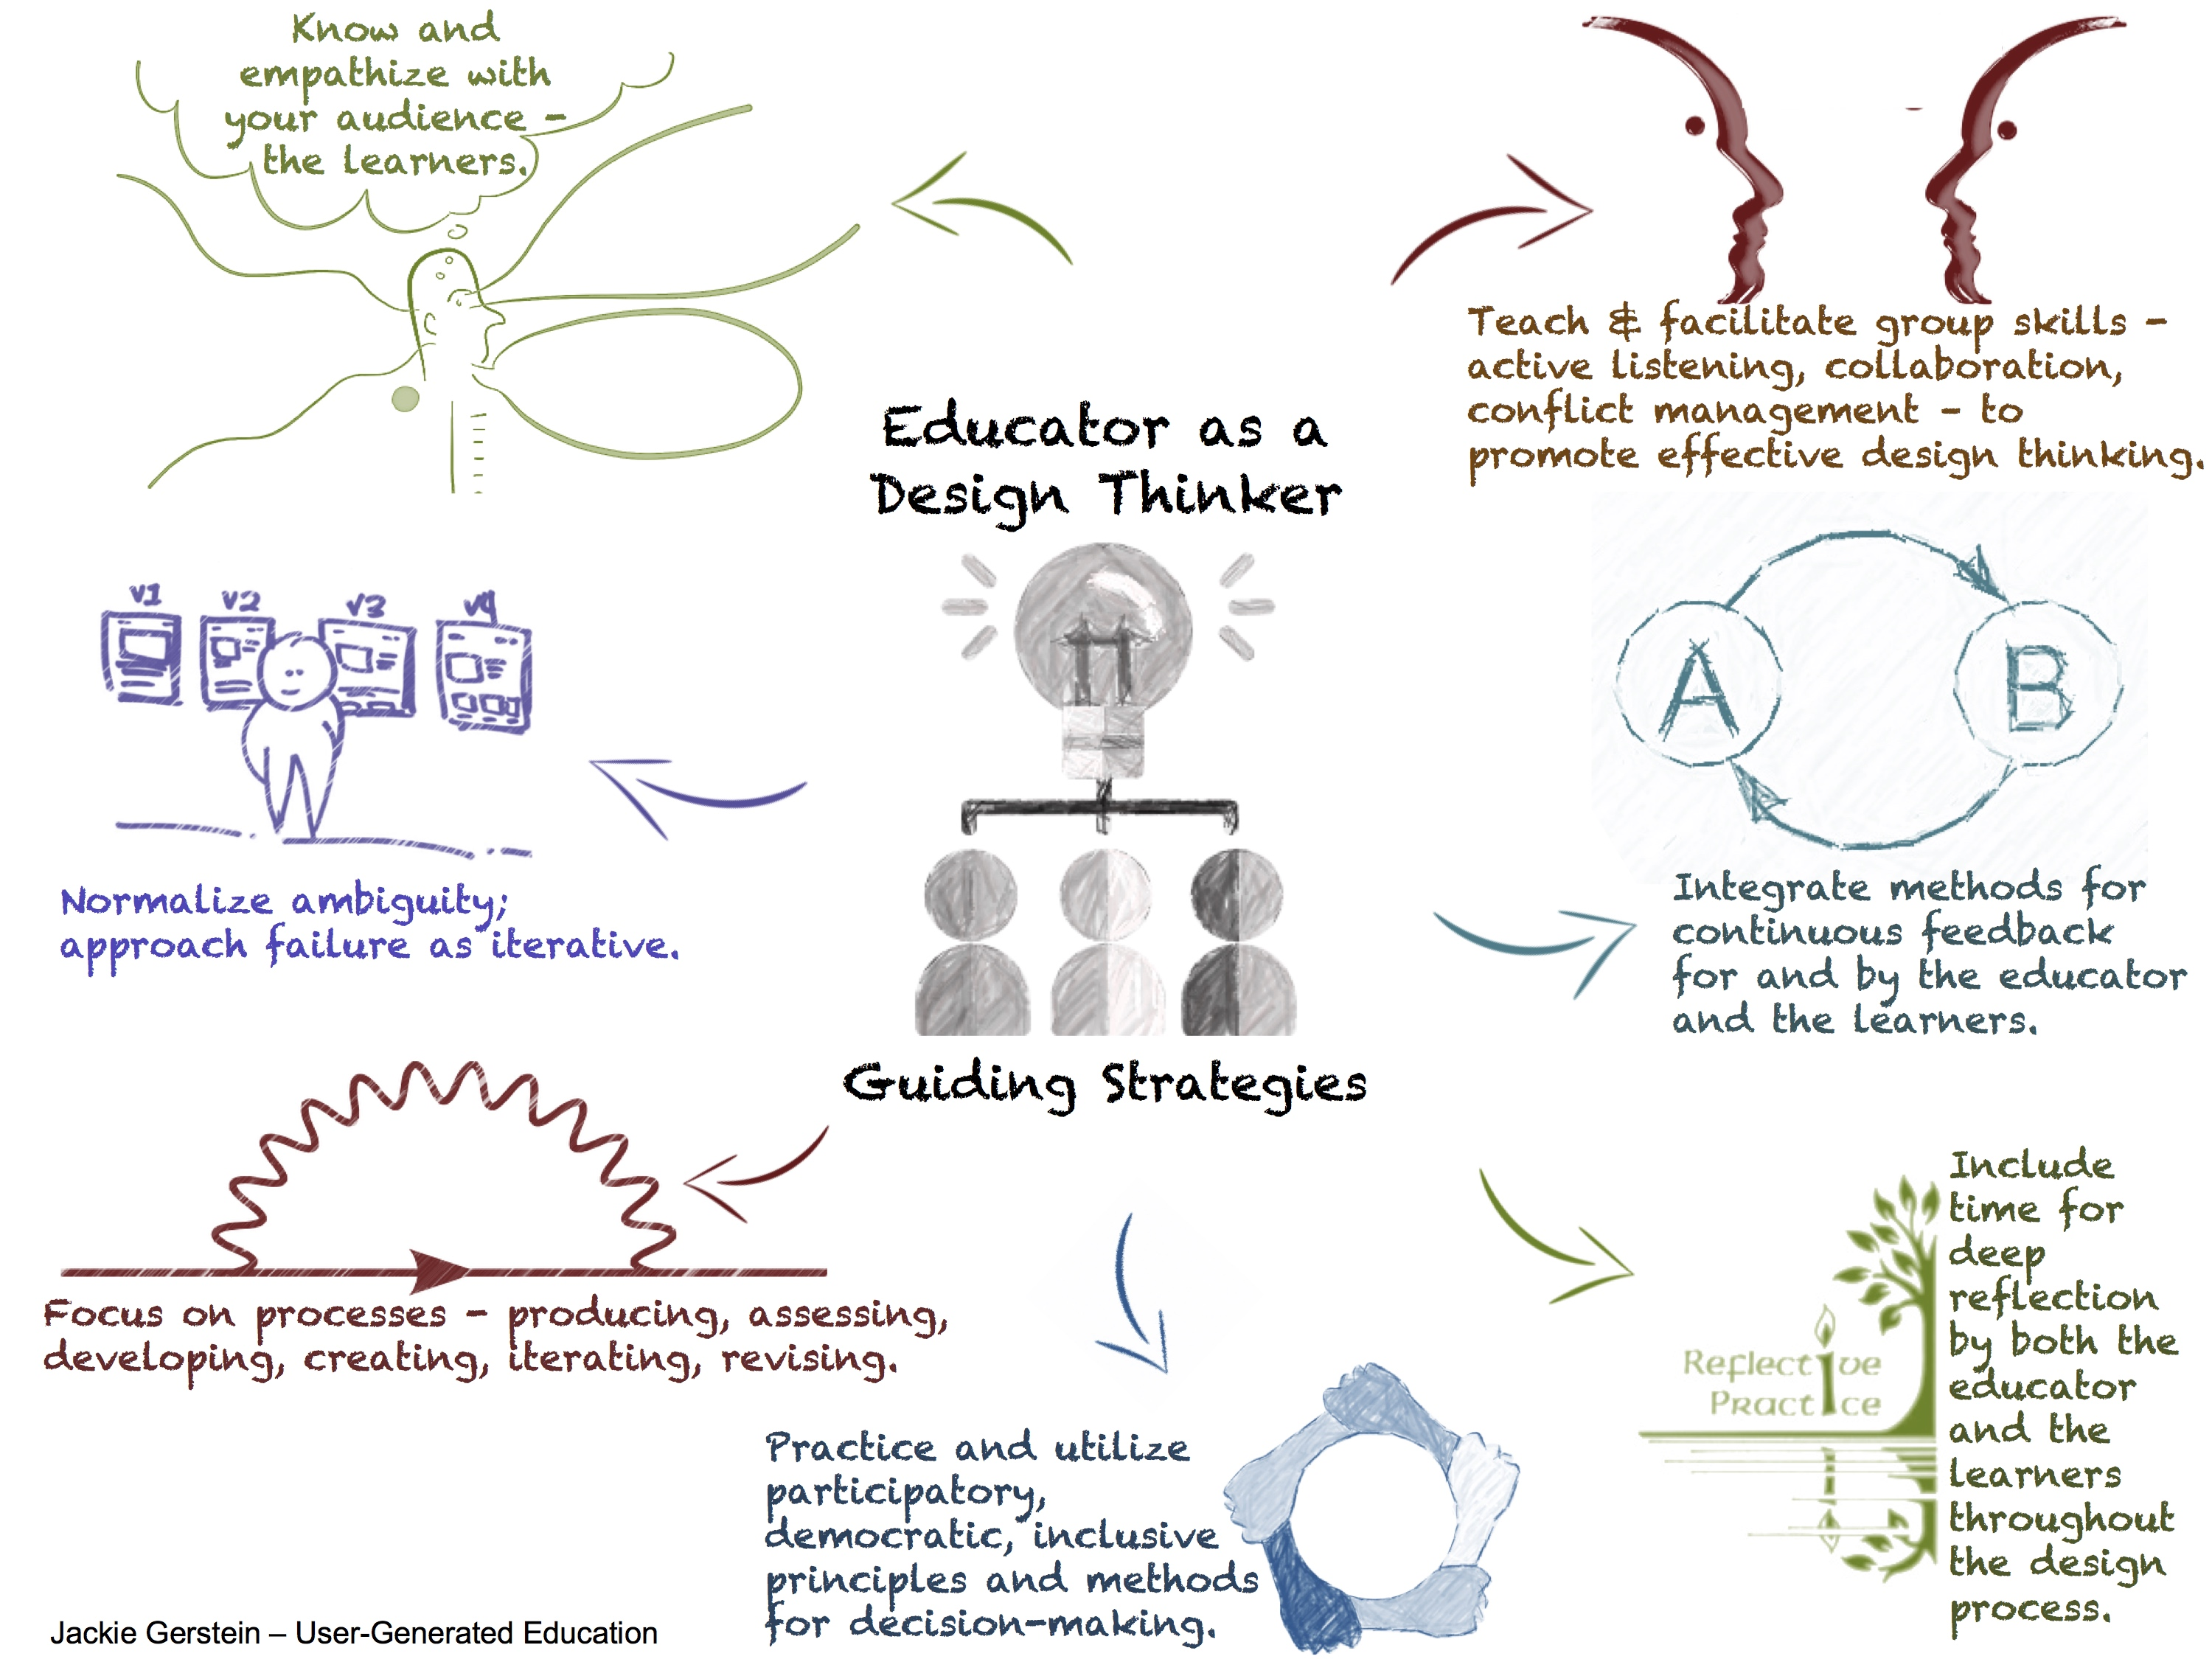 The Educator as a Design Thinker